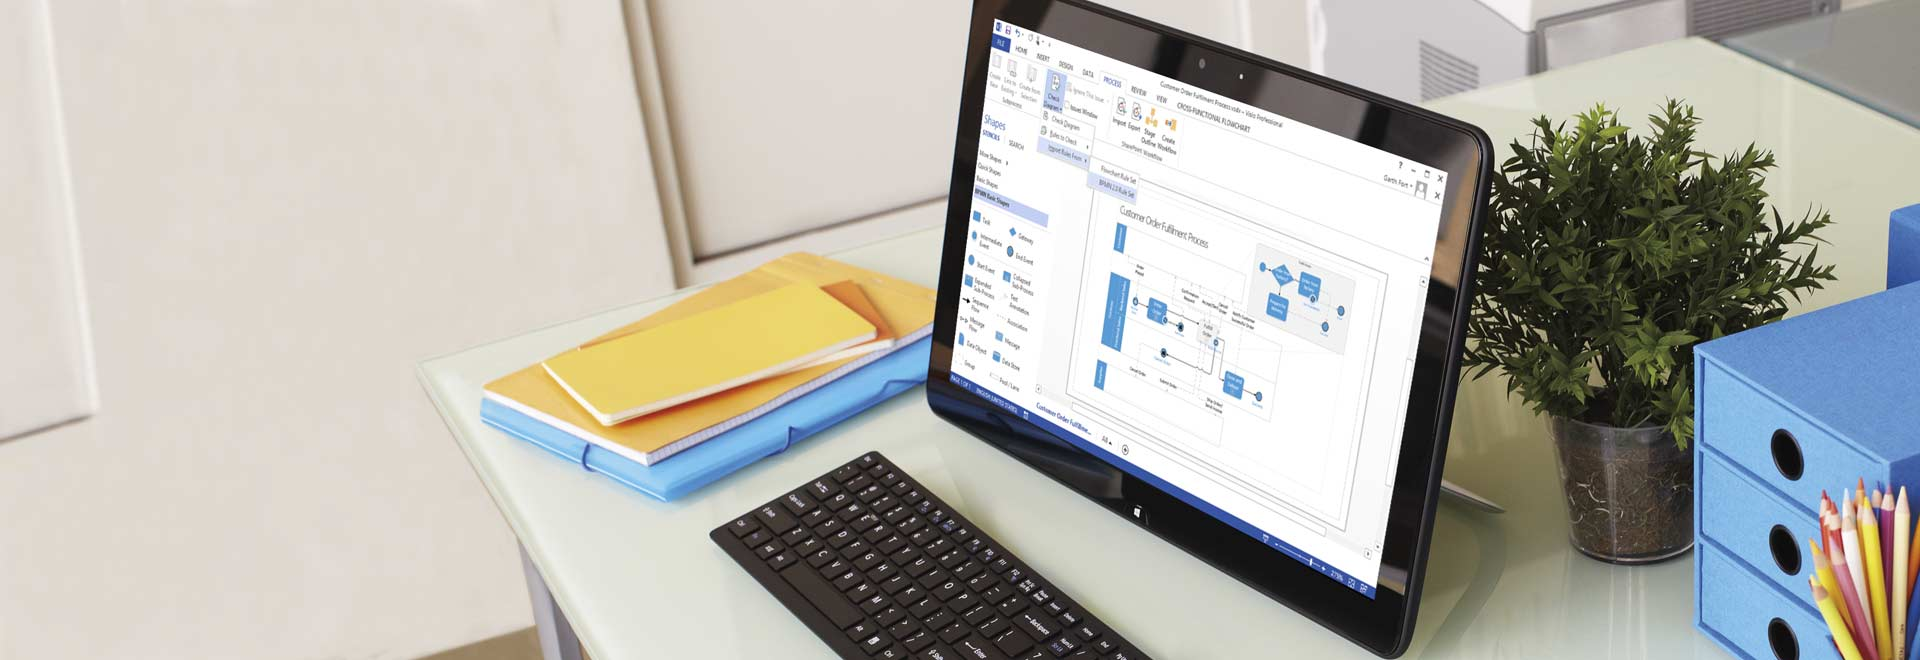 A desk with a tablet computer displaying a process diagram in Visio Professional 2016